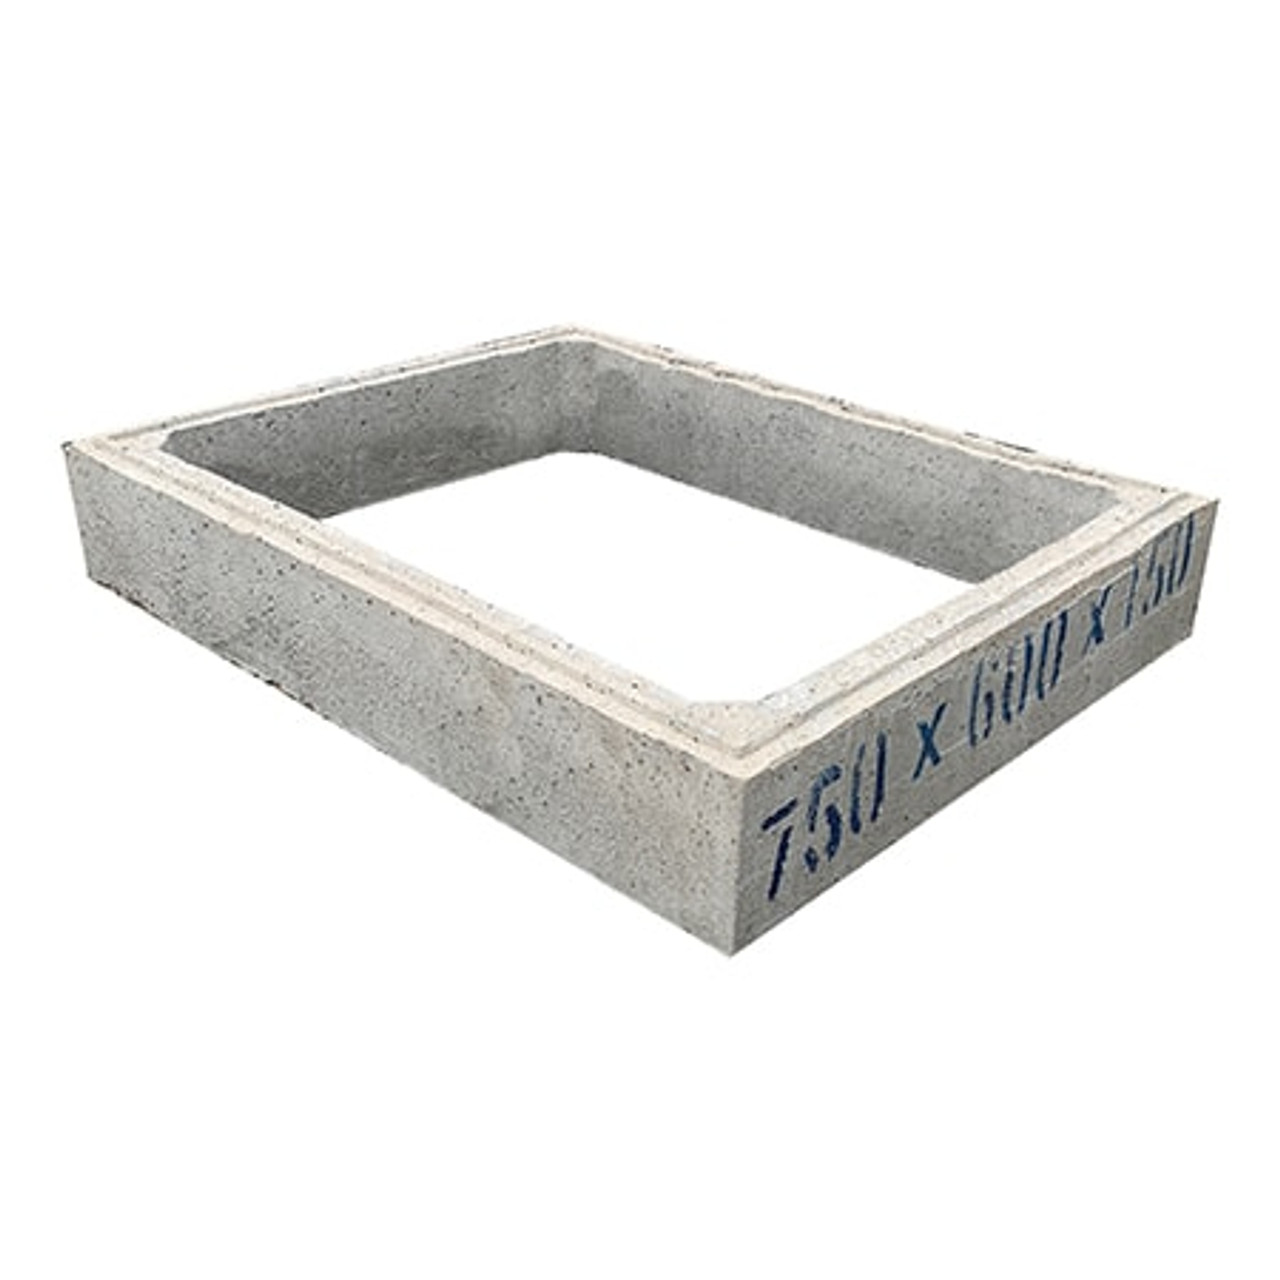 750mm x 600mm x 150mm precast concrete chamber section.